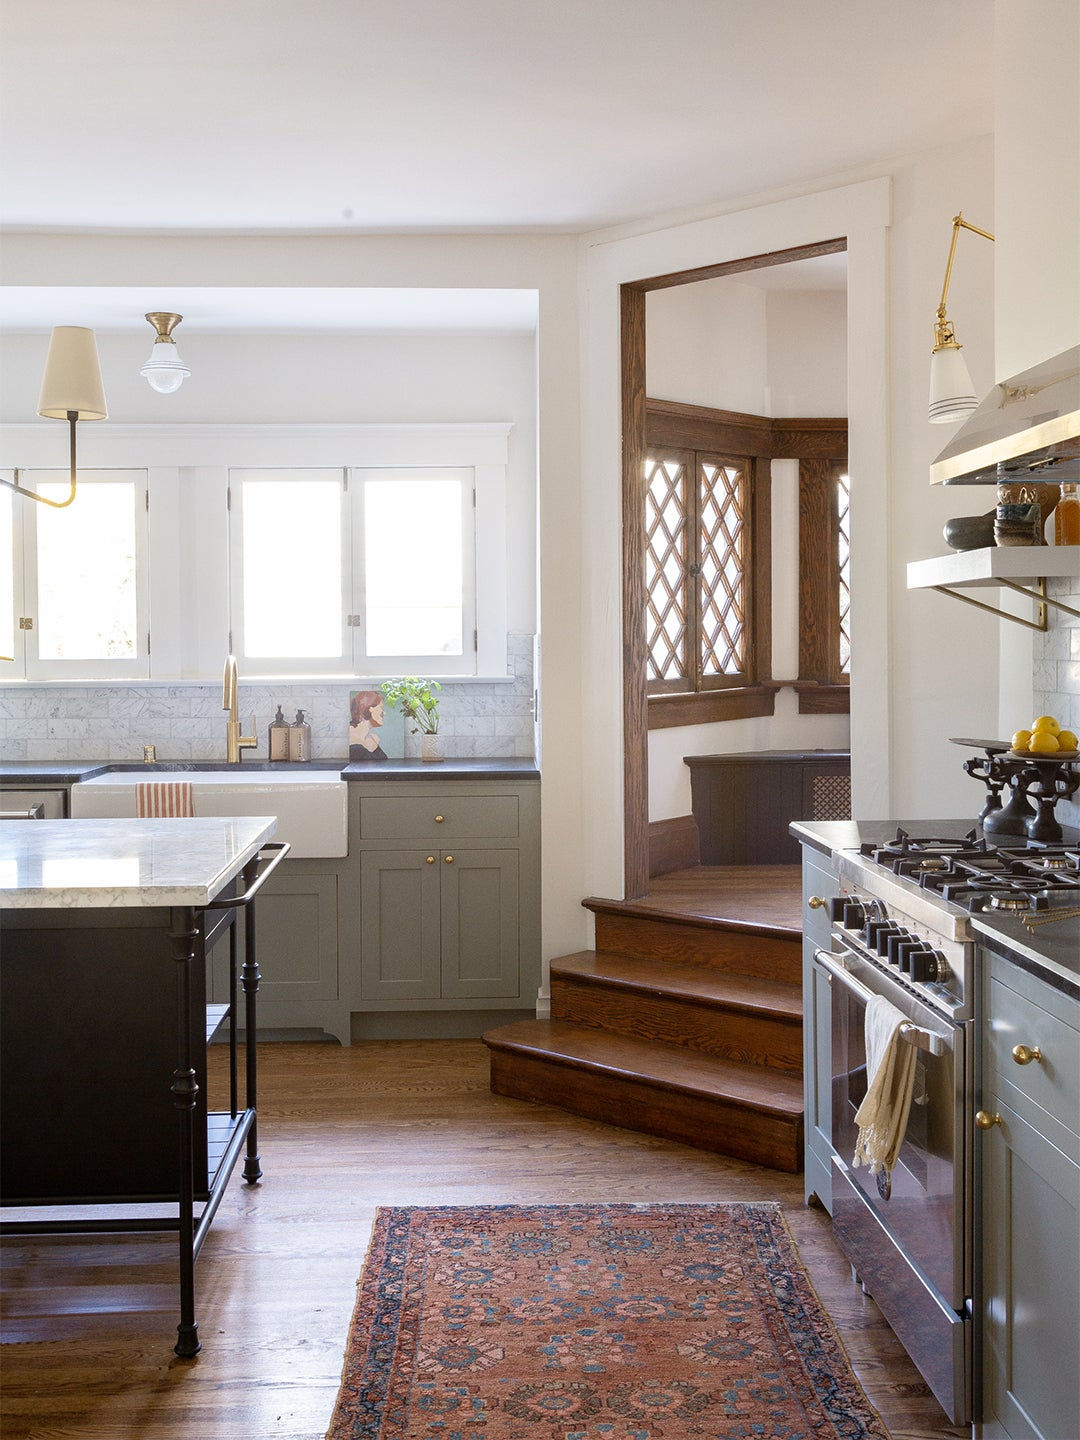 stairs going down into a kitchen